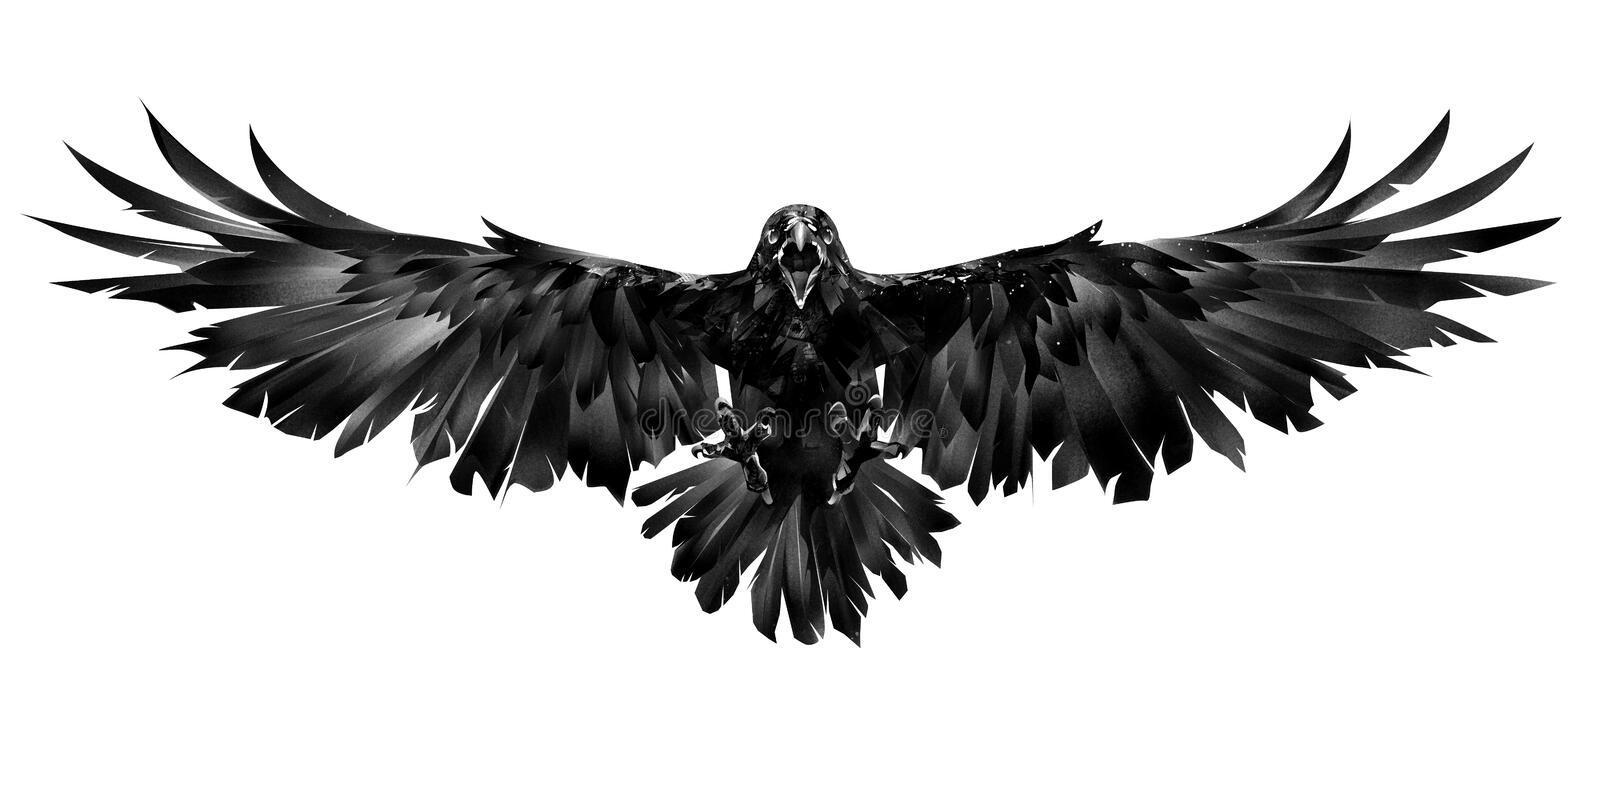 Drawn flying raven on a white background stock photography